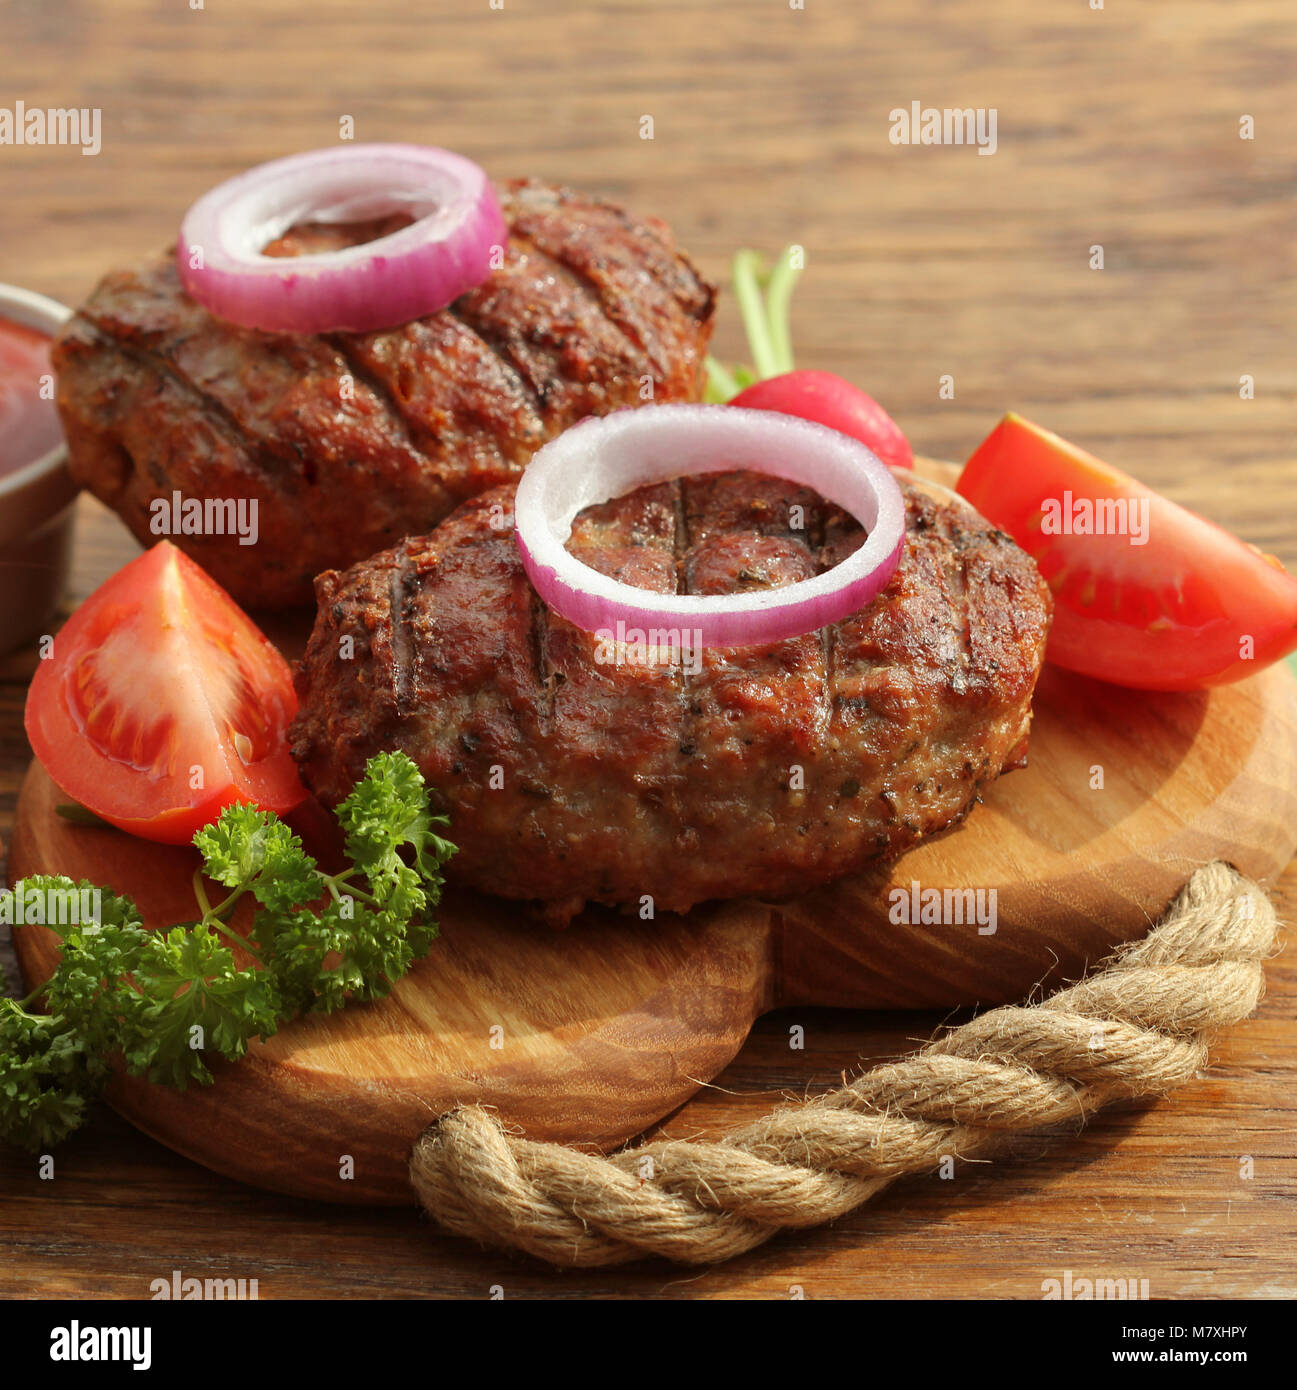 Homemade burger with beef cutlet, vegetables, onion and herbs on wooden cutting board - Stock Image